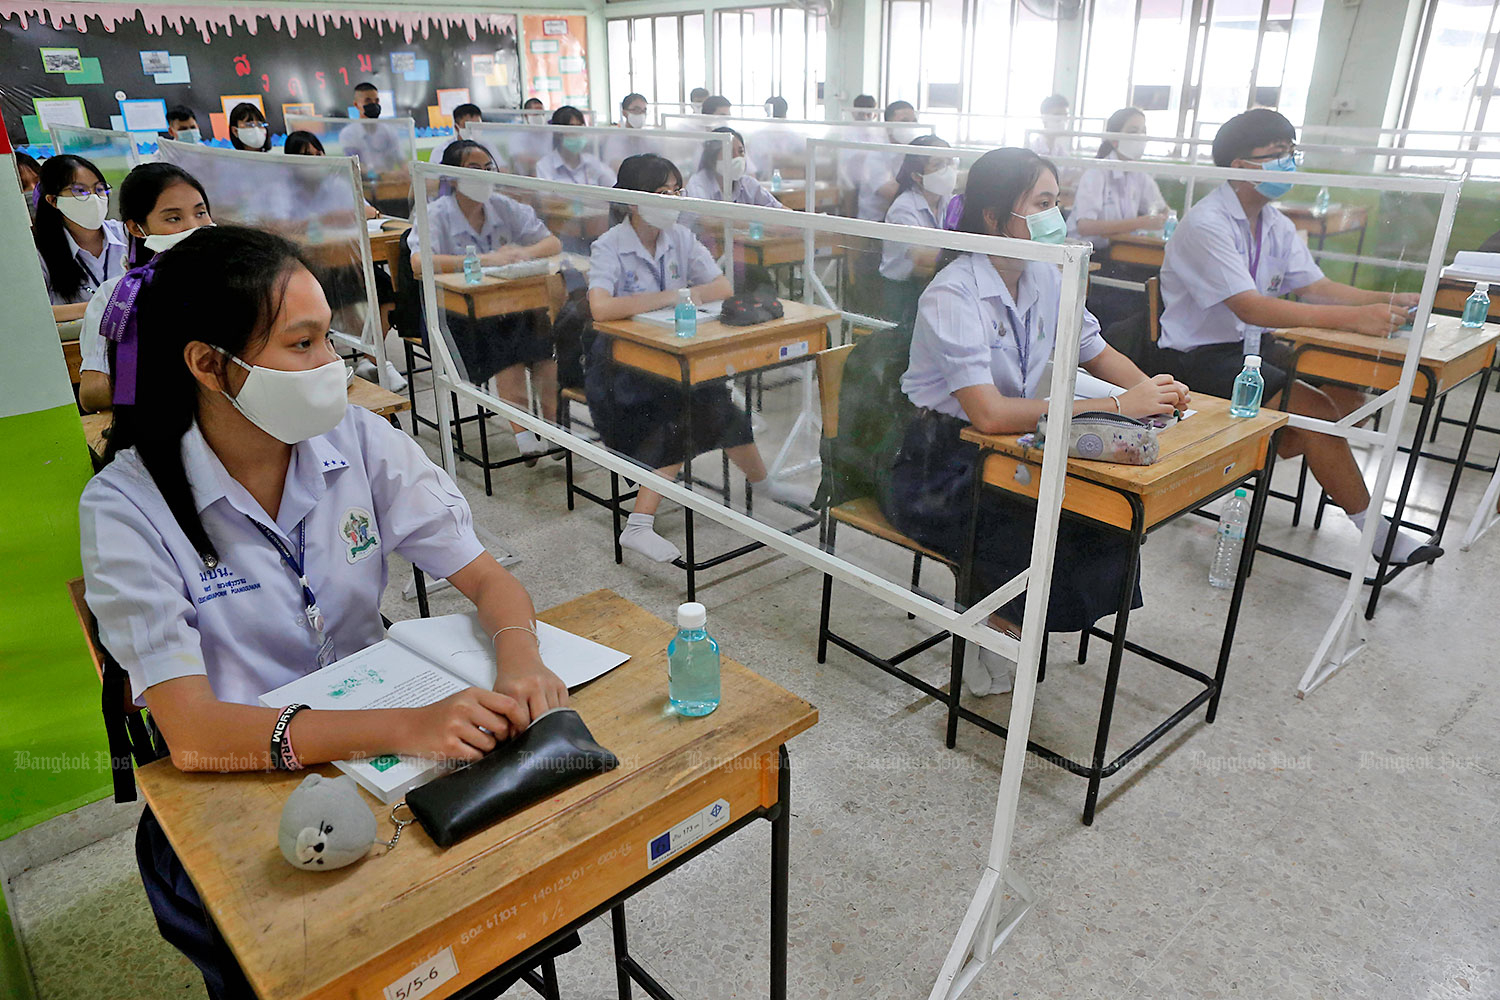 Students attend class on the first day of term on Wednesday at Mathayom Prachaniwet School in Bangkok.(Photo by Pattarapong Chatpattarasill)